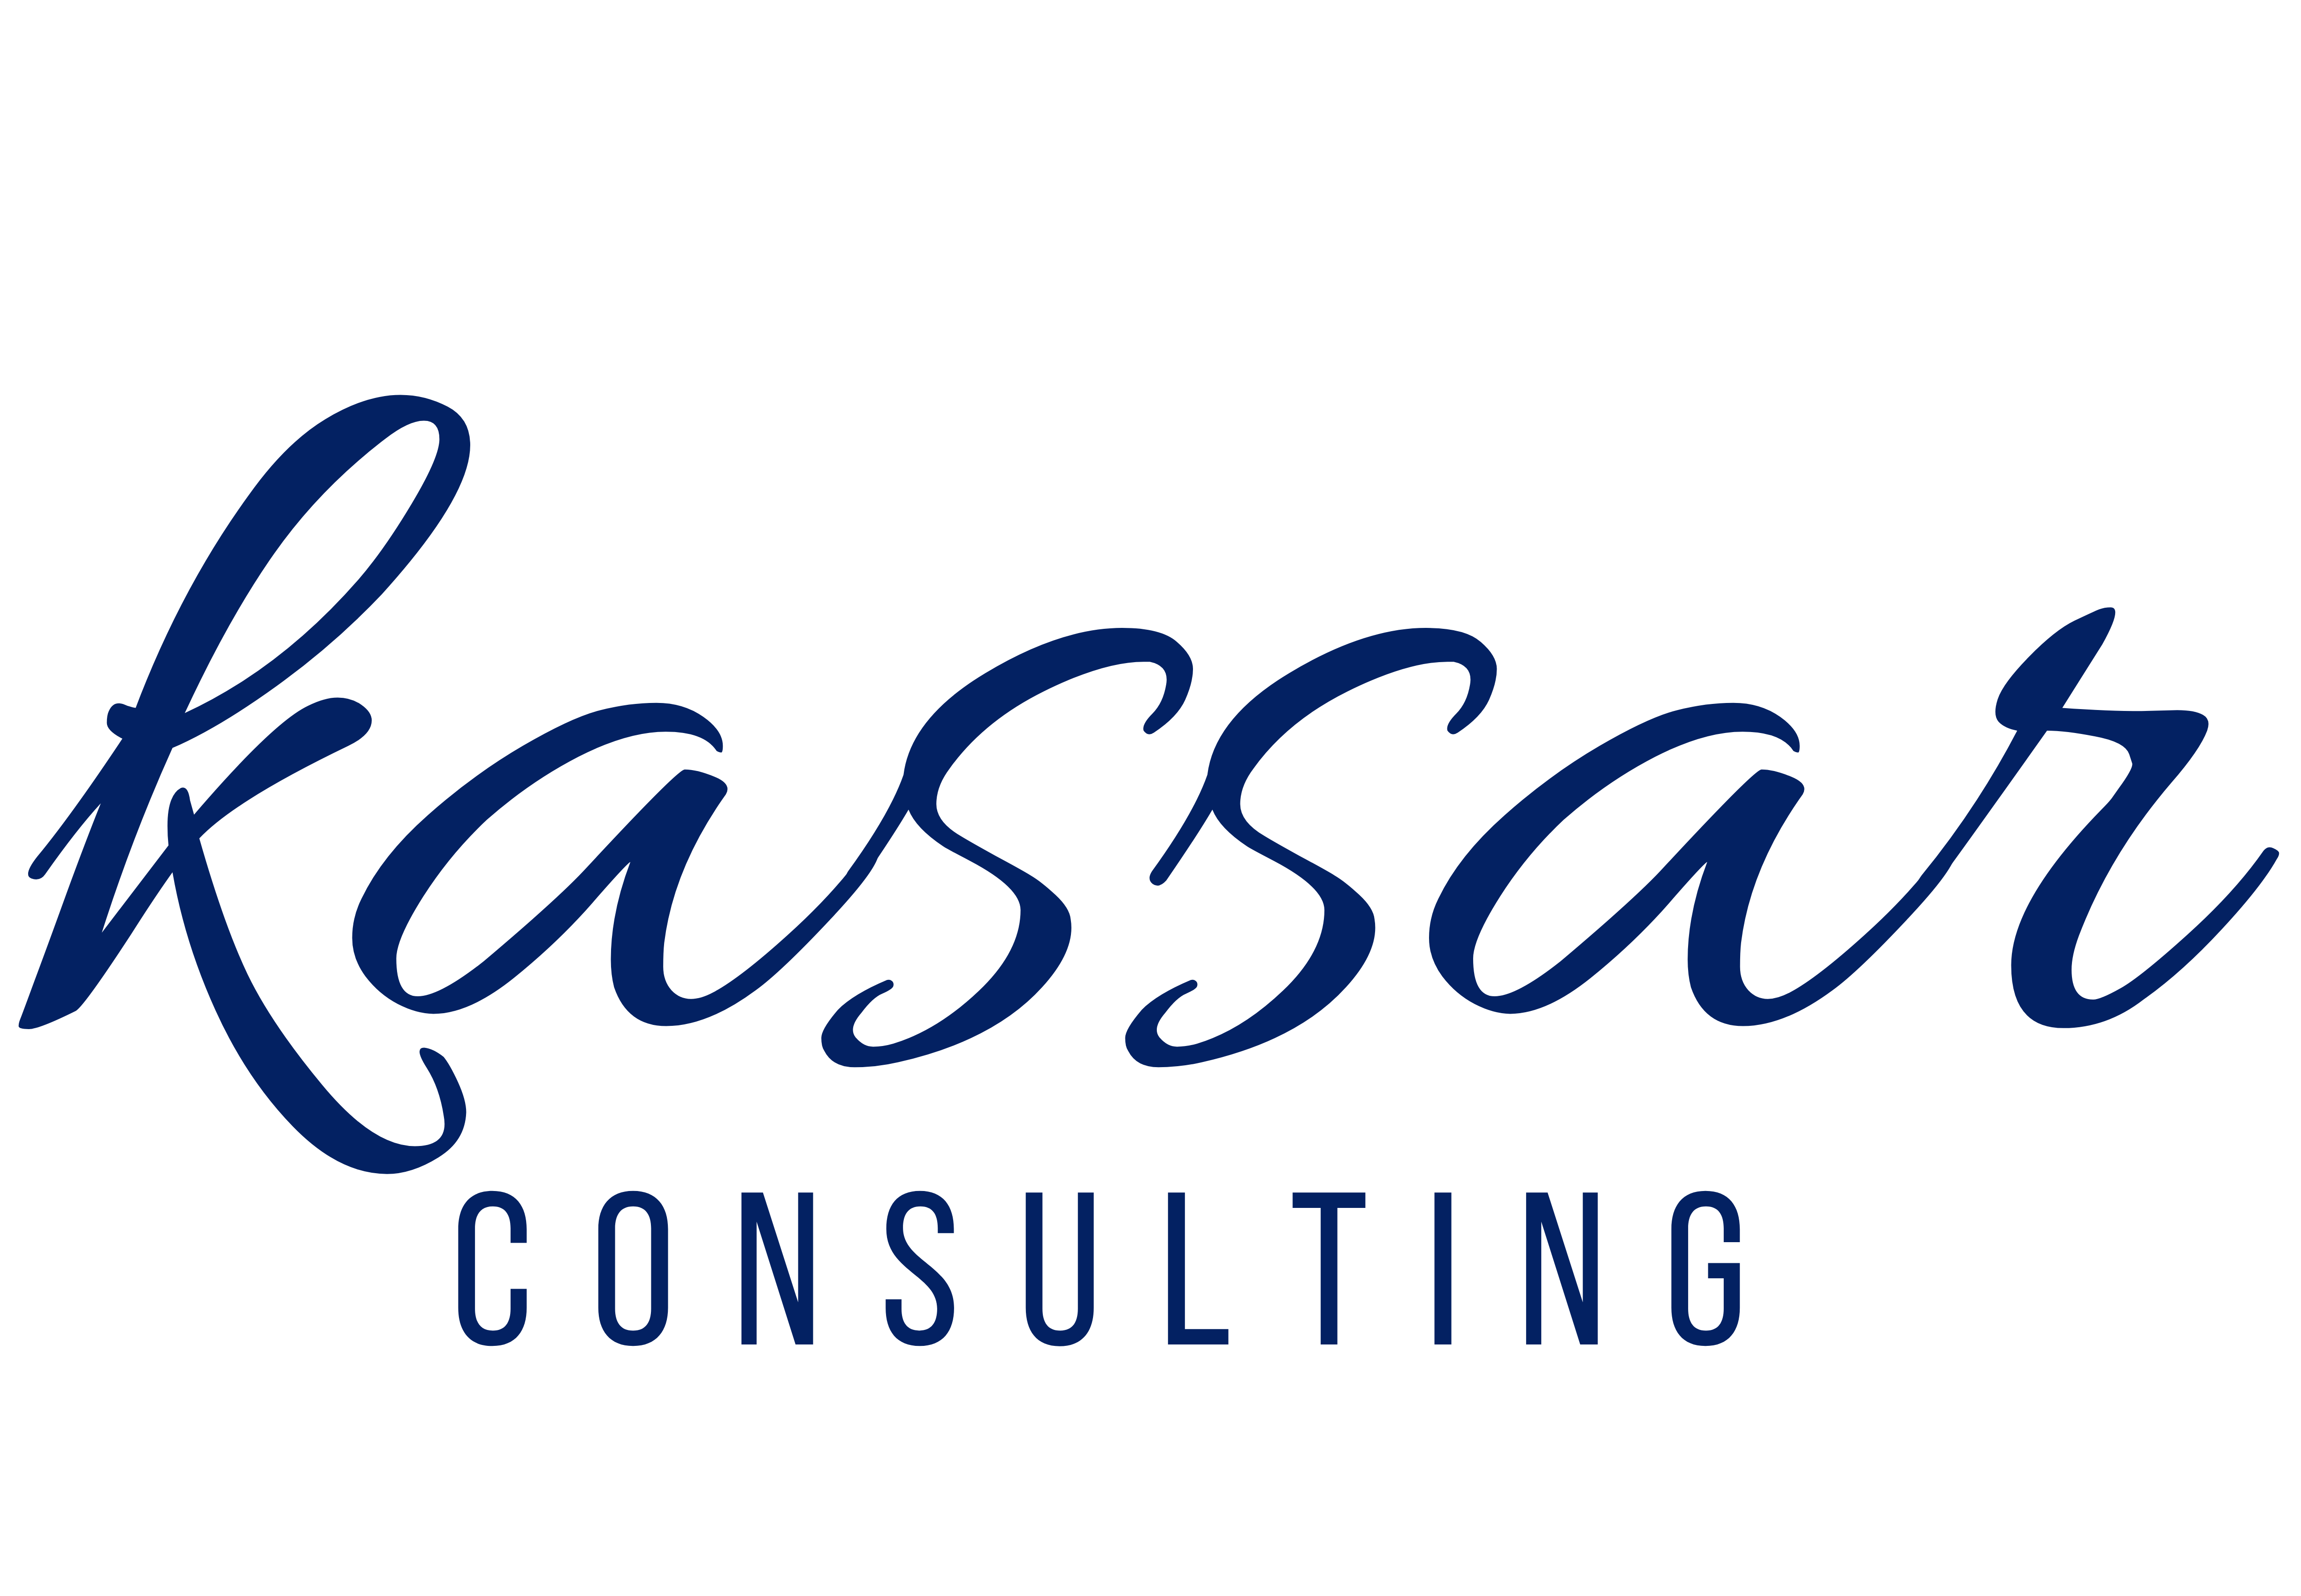 Kassar Consulting